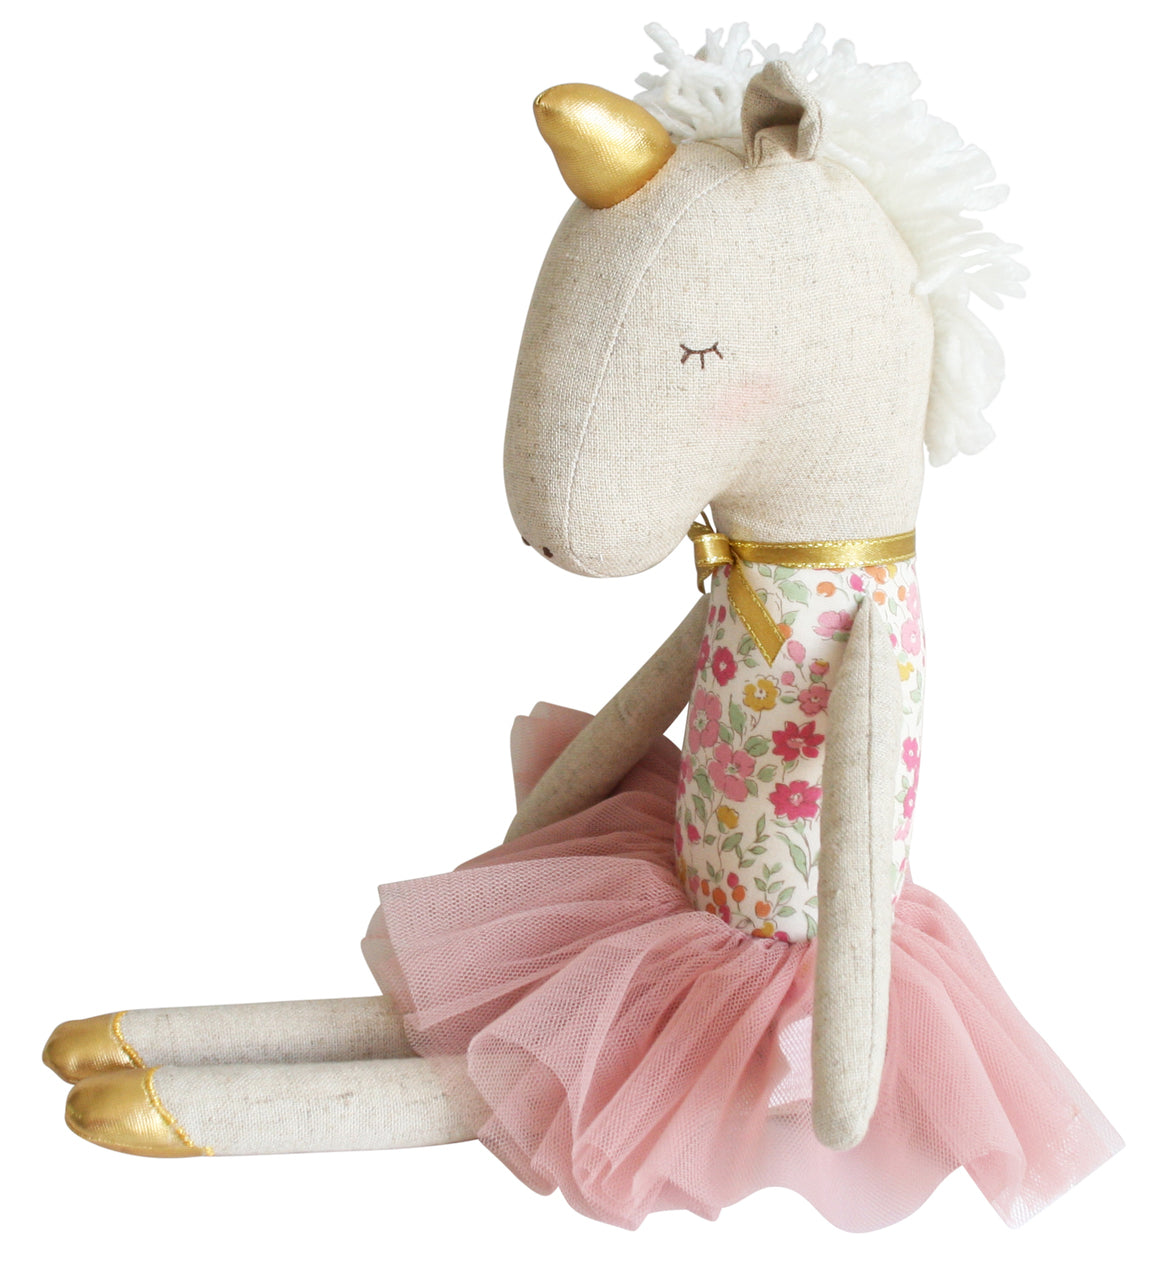 Alimrose Yvette Unicorn Doll in Rose Garden